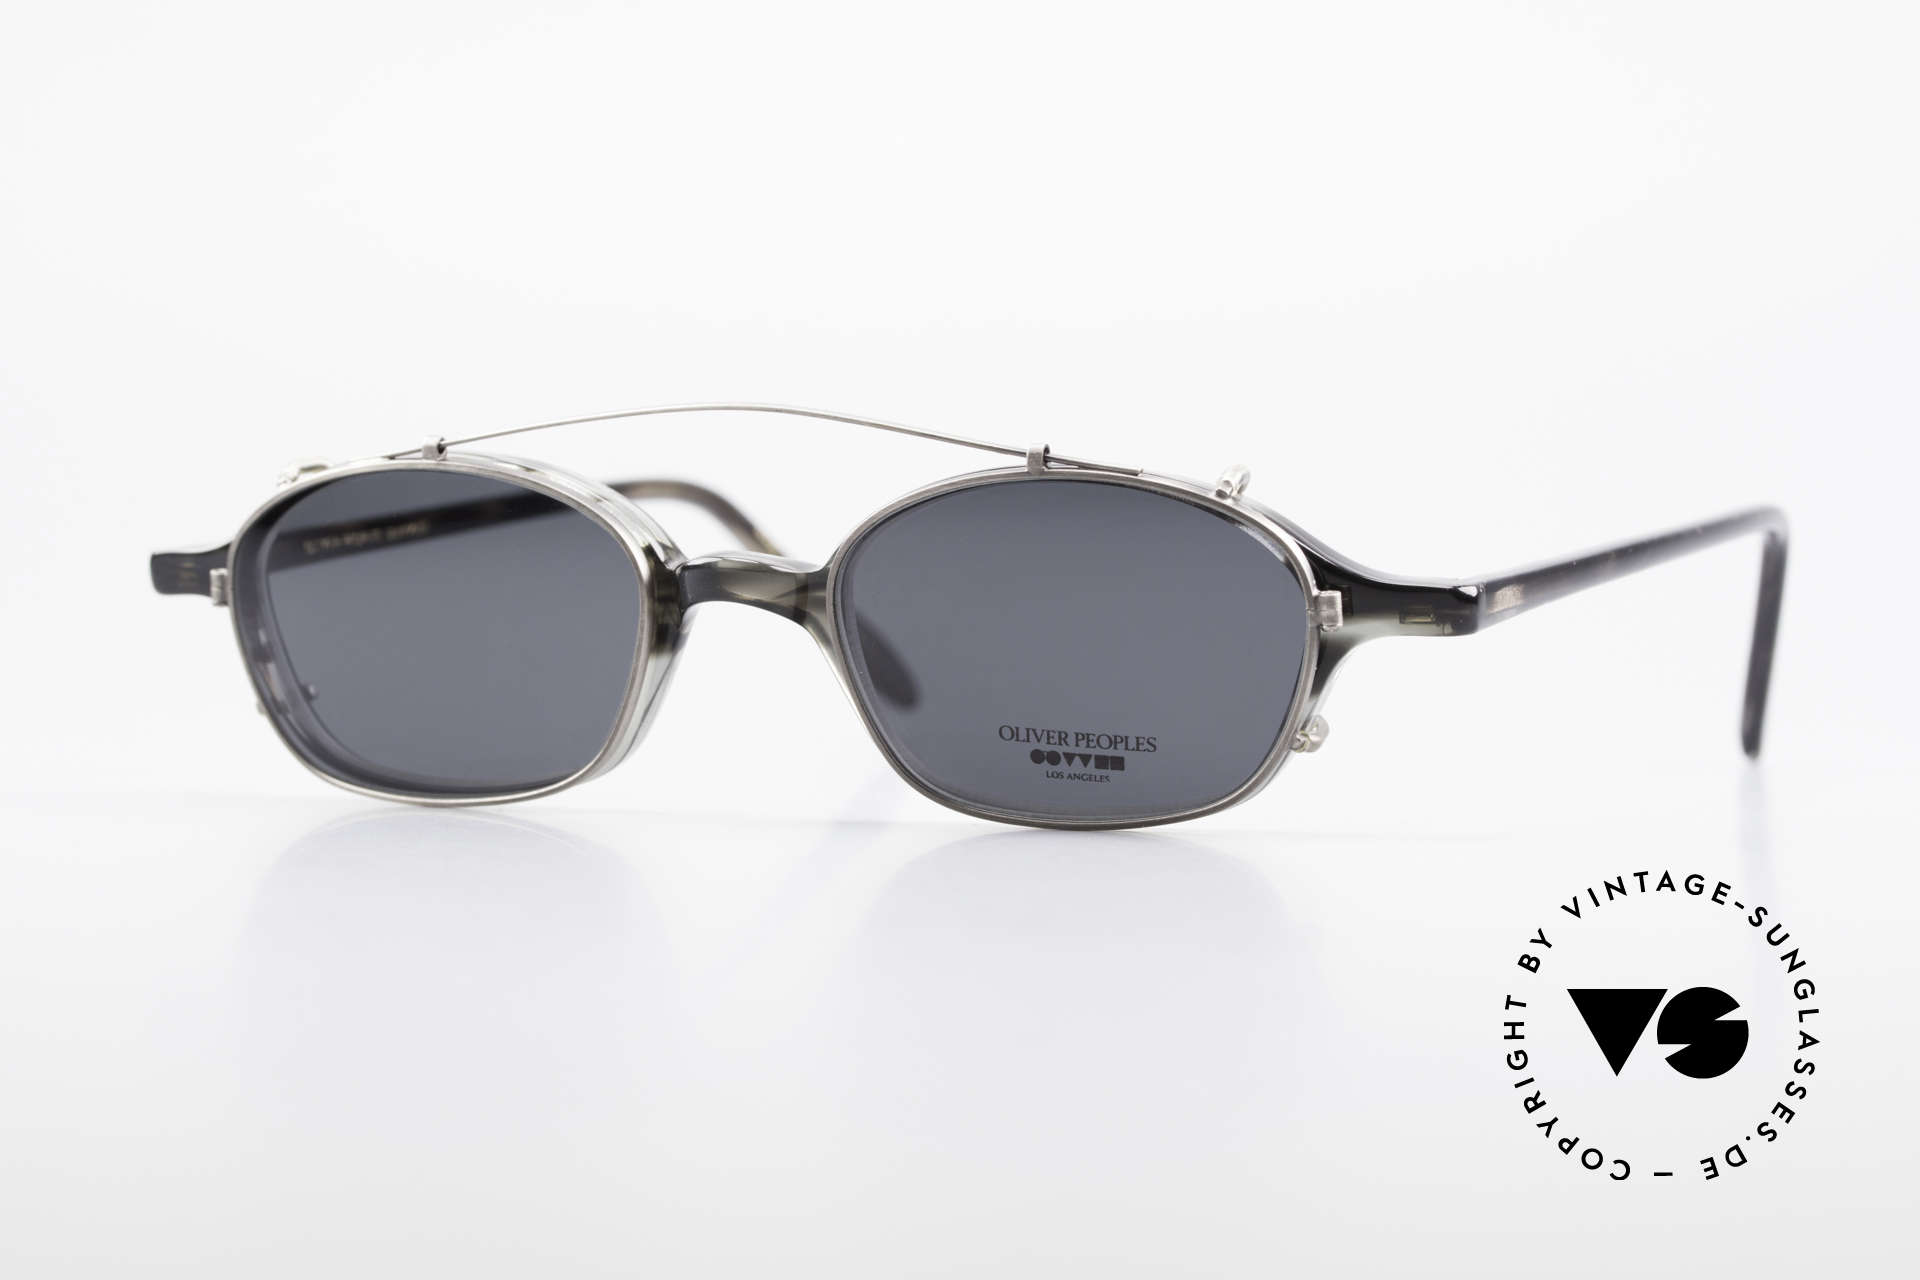 Oliver Peoples OP561 Classic 90's Frame Clip On, vintage Oliver Peoples eyeglasses from the 1990's, Made for Men and Women